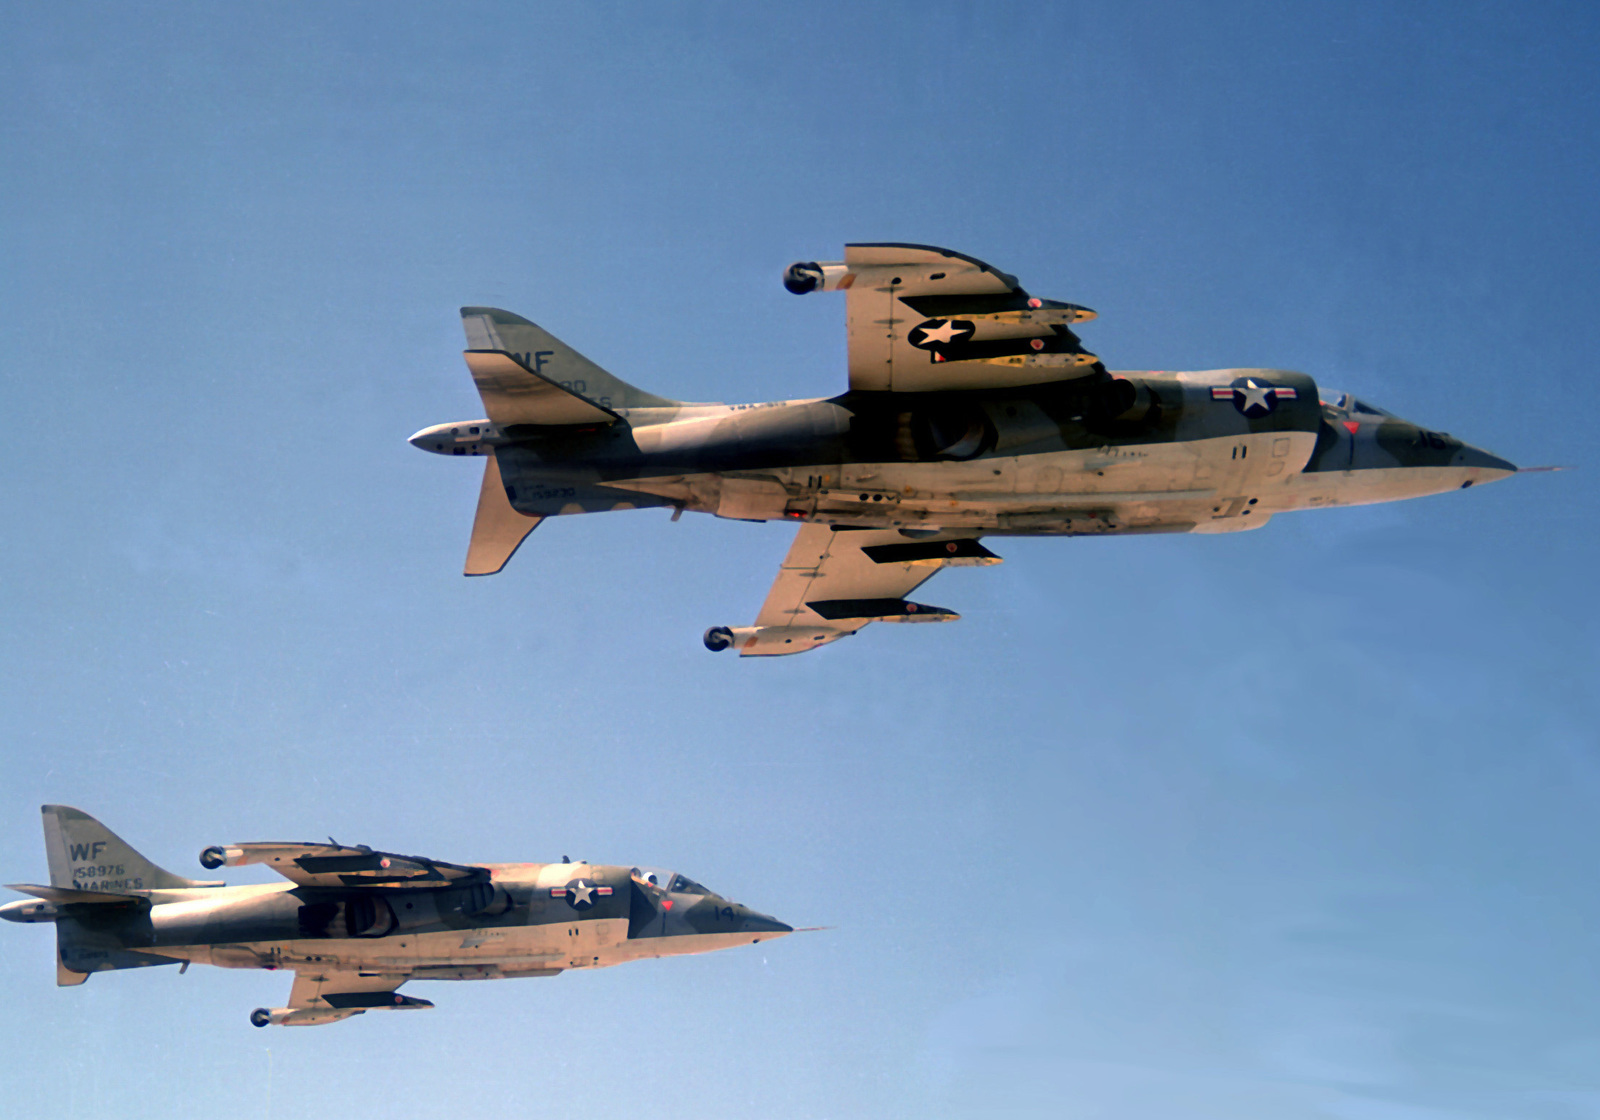 An air-to-air right side view of two Marine Fighter Attack Squadron 513 (VMFA-513) AV-8A Harrier aircraft